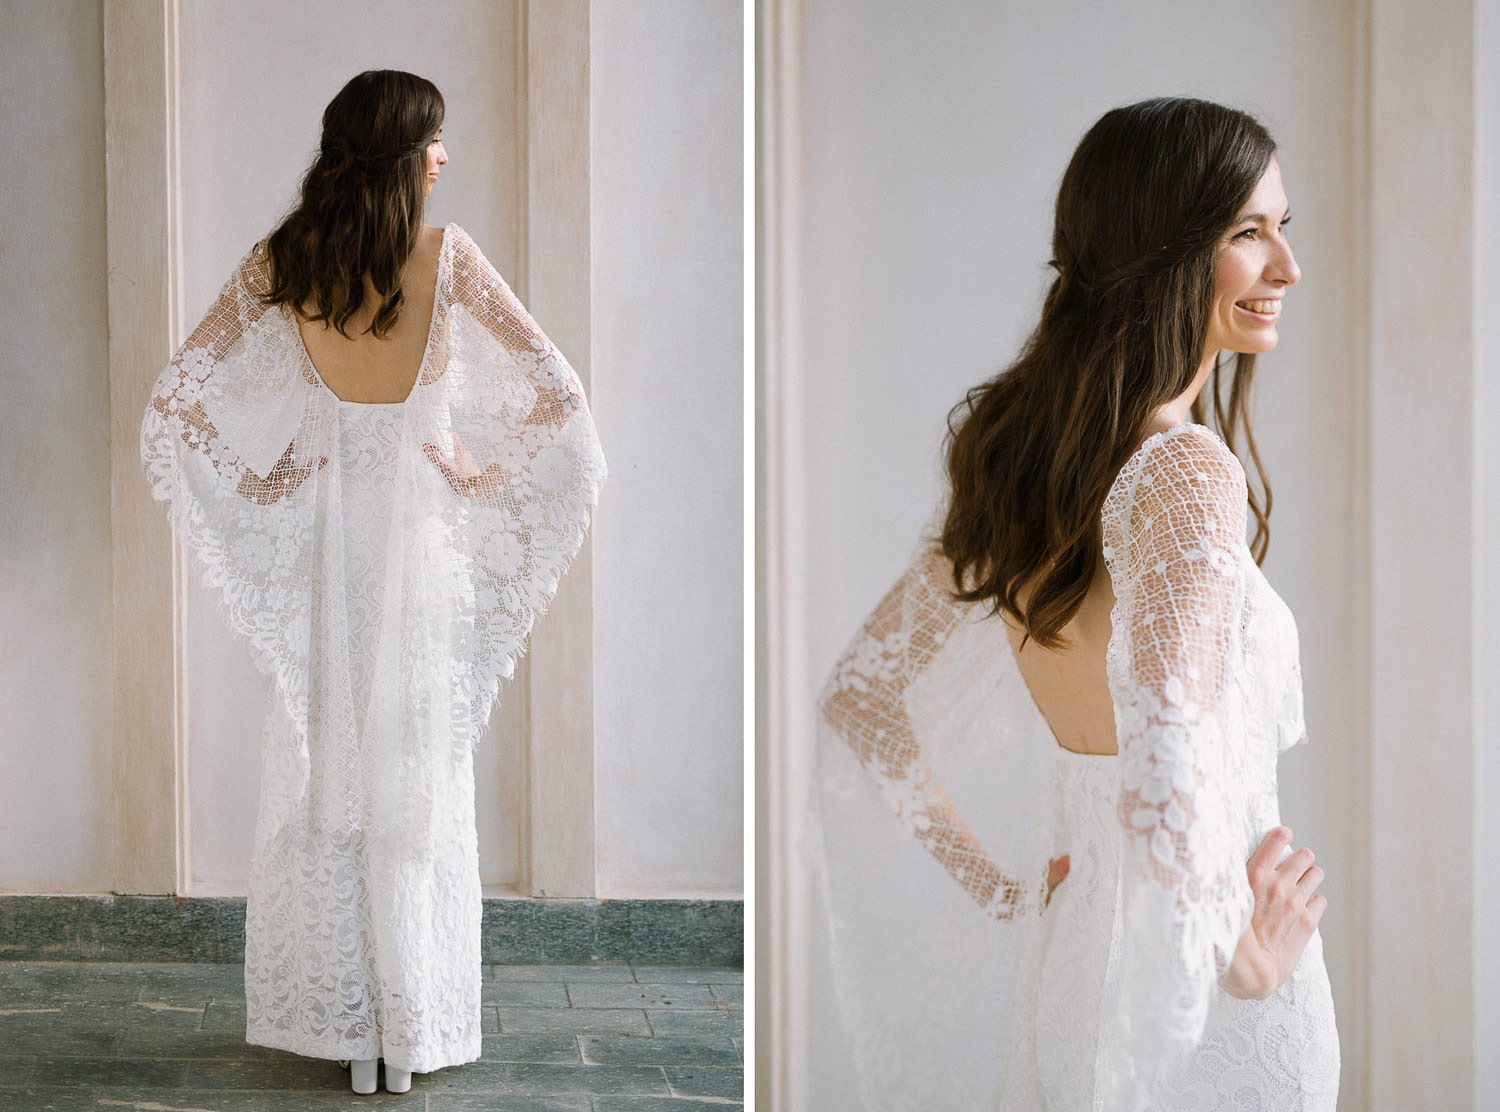 Lake Orta wedding photographer , elegant bride in Grace Loves Lace dress | Photo: Camilla Anchisi